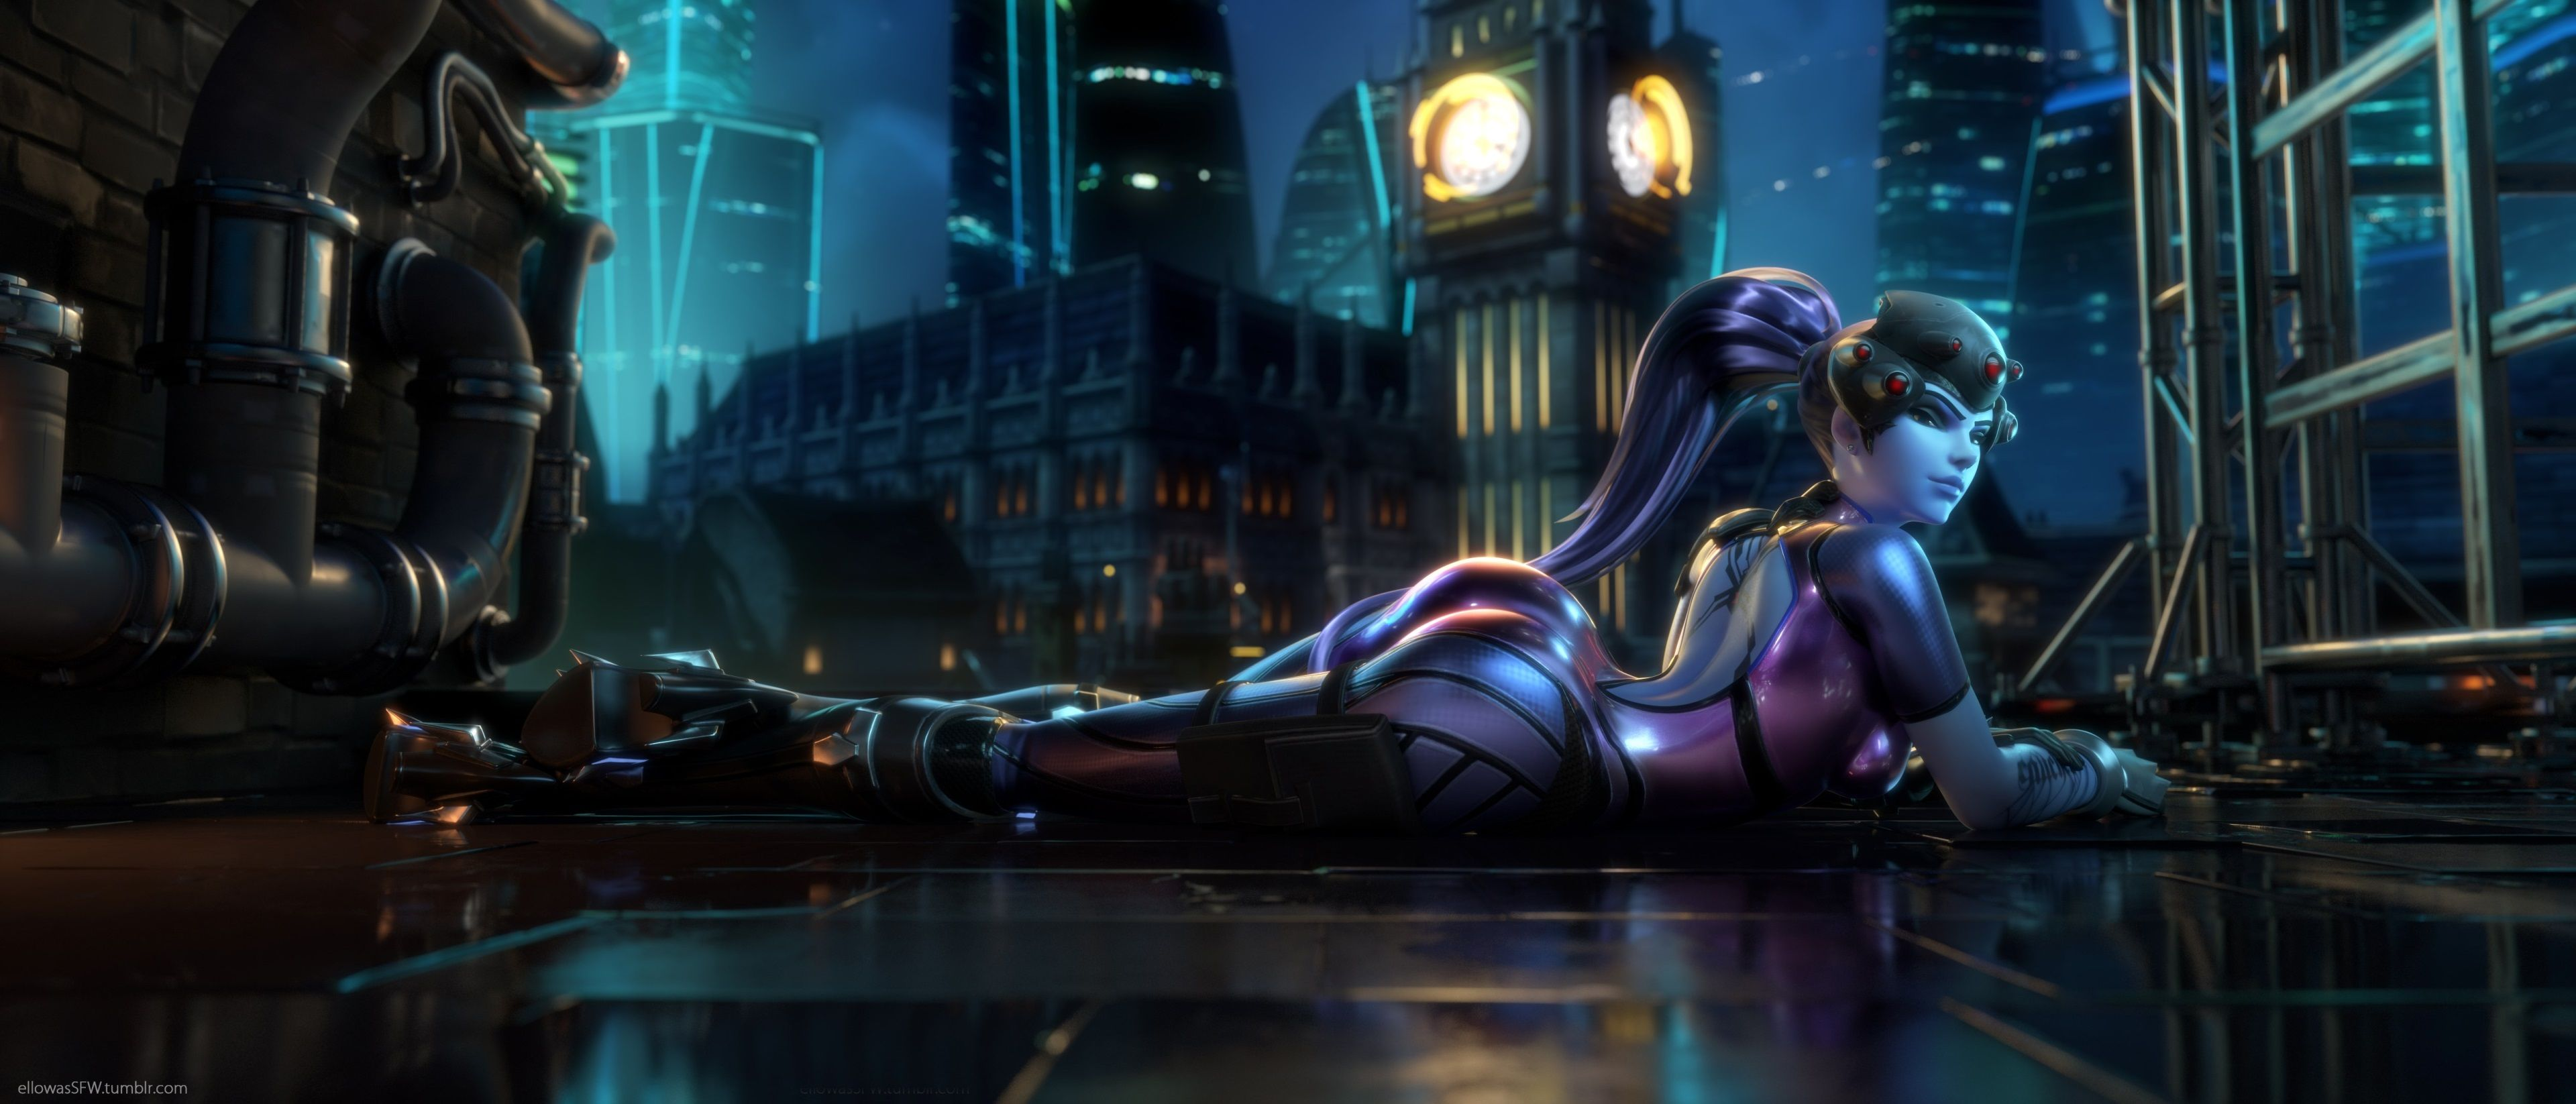 3840x1646 widowmaker 4k cool pc wallpaper | art | pinterest